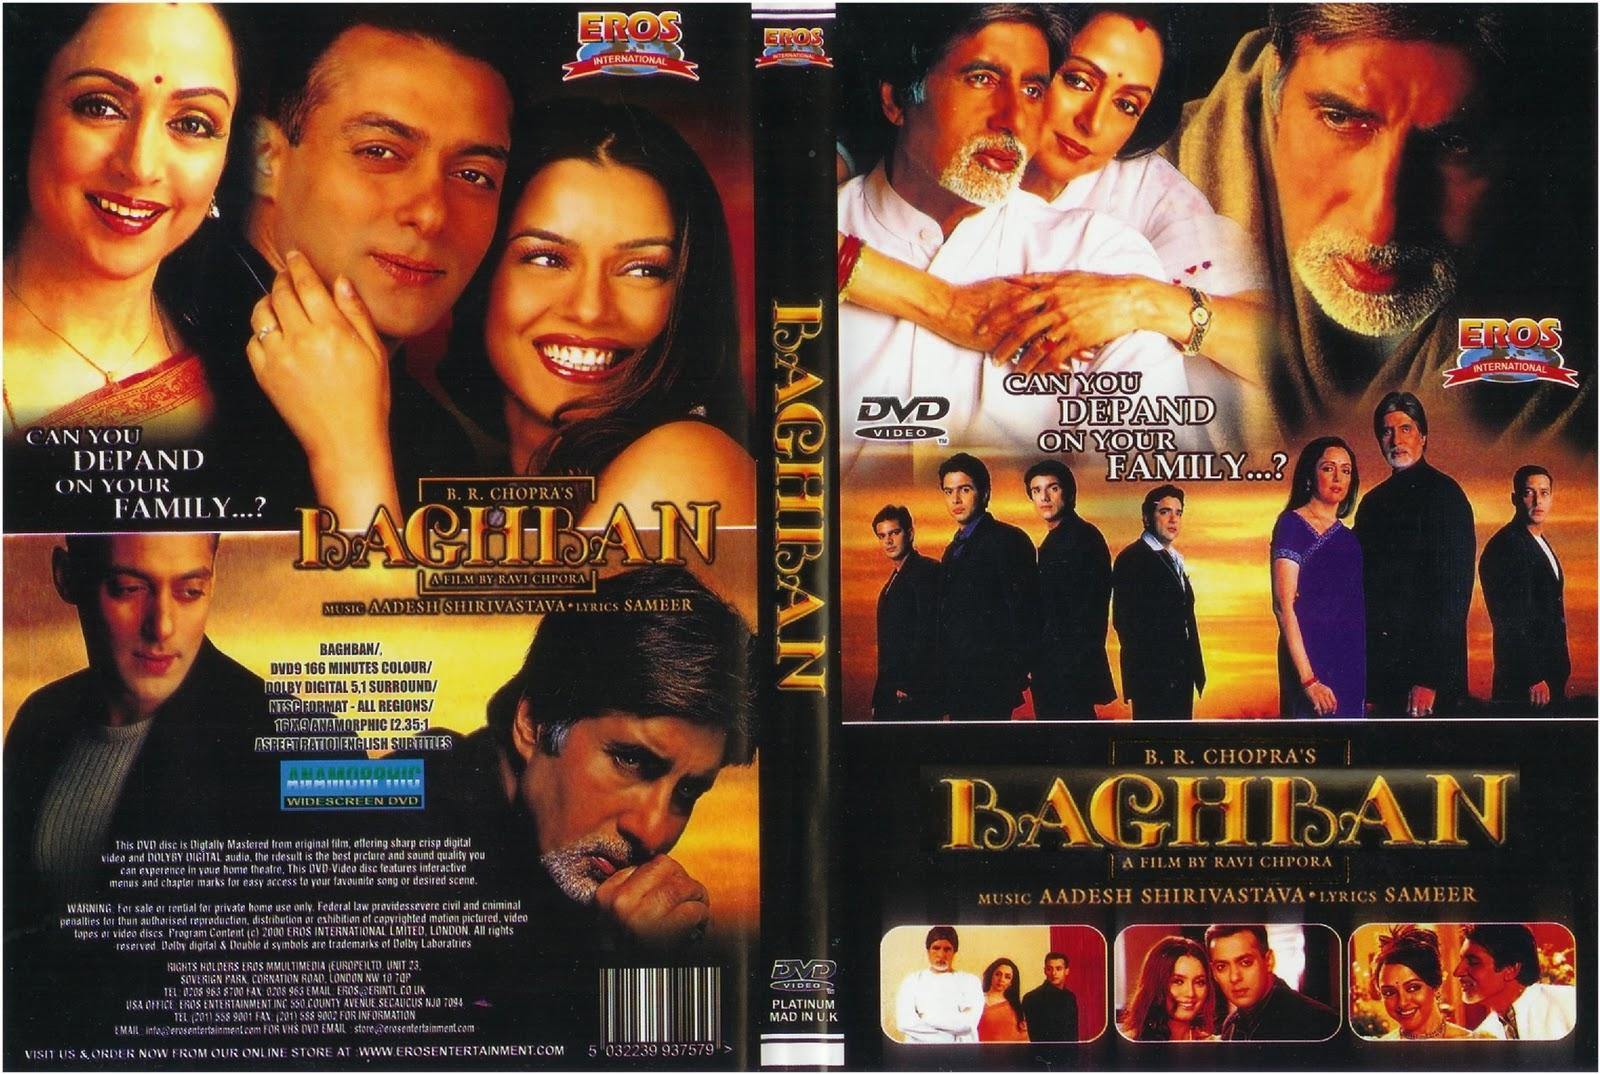 http://www.rudibela.com/singleimages/songs-in-hindi-movie-baghban-6qdkvbdtnoqmiqyv.jpg